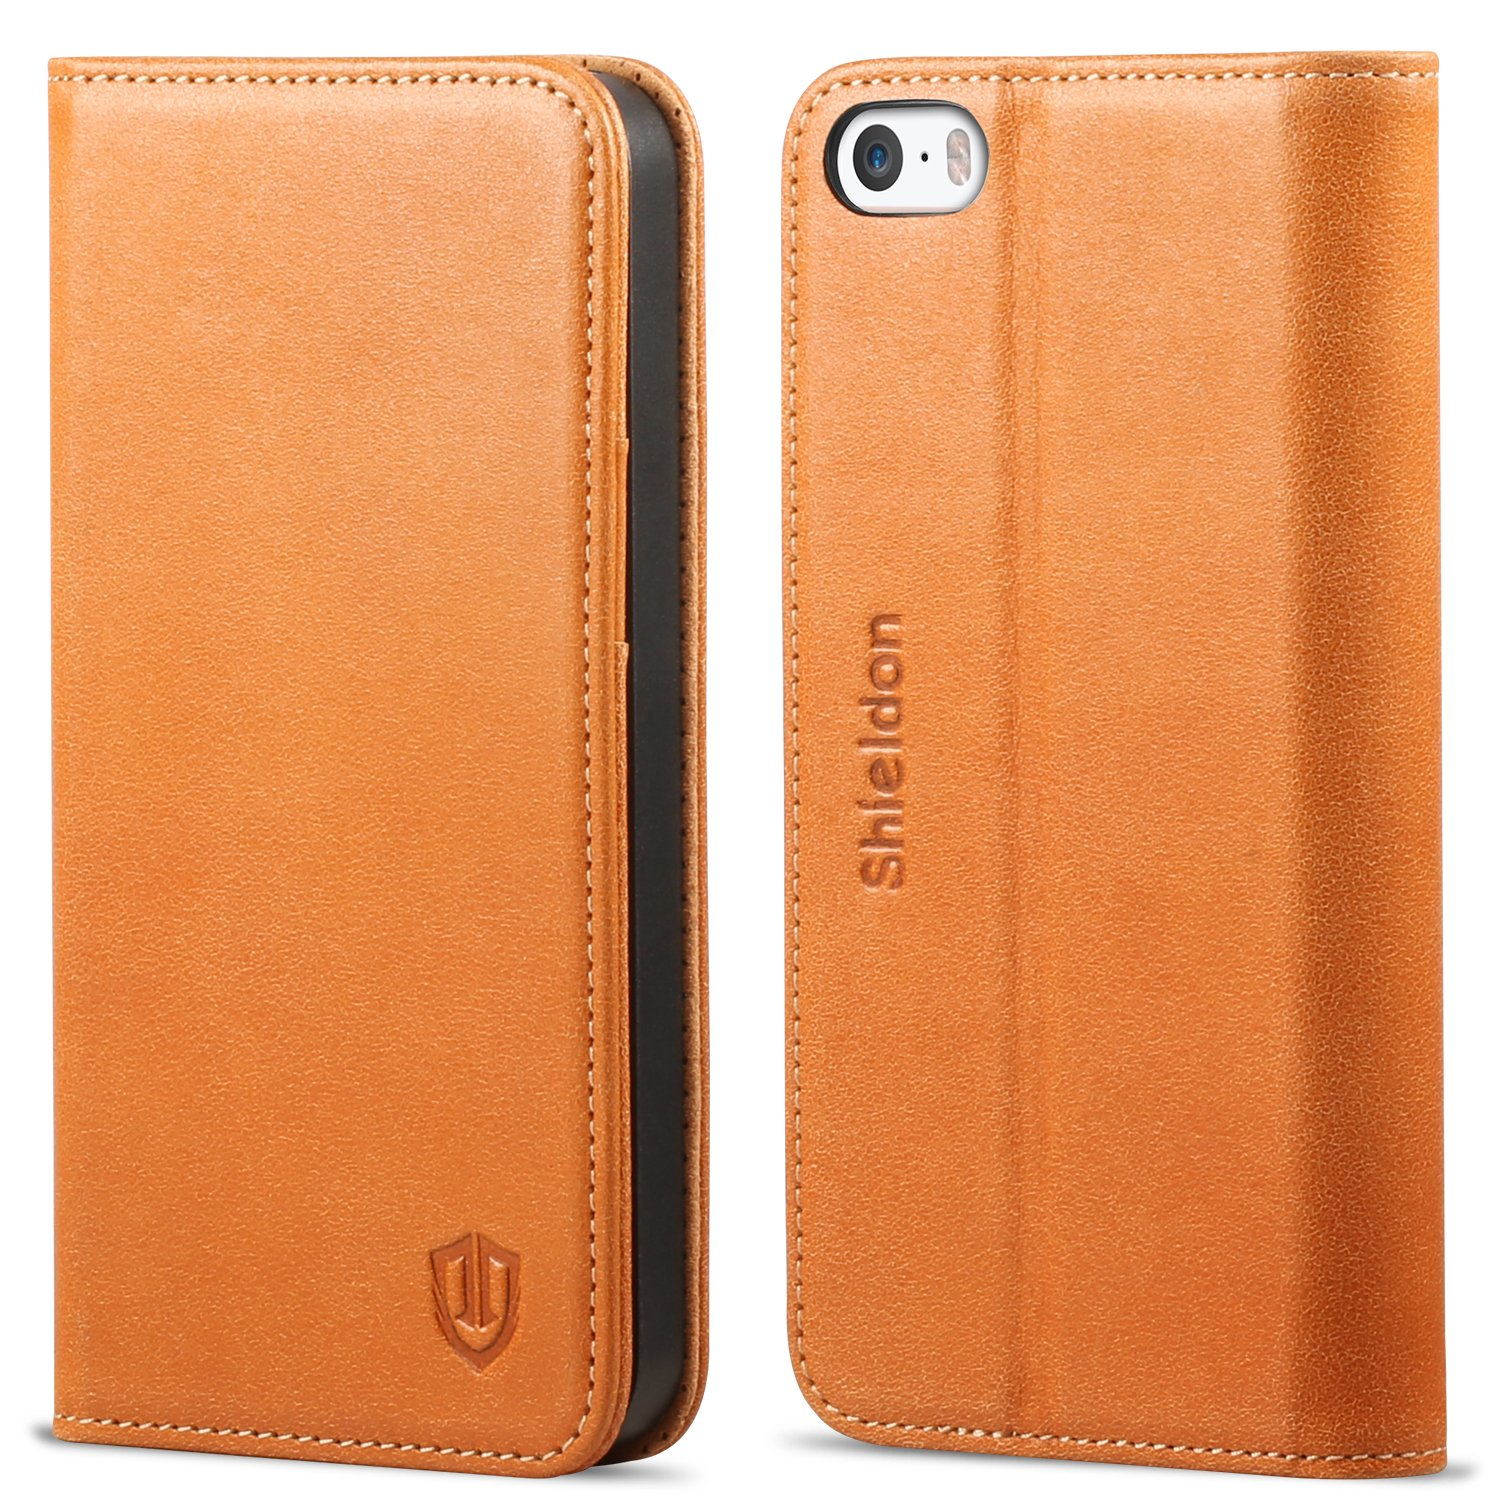 Iphone se case iphone 5s case shieldon genuine leather case wallet case seri ebay - Iphone 5s leather case ...